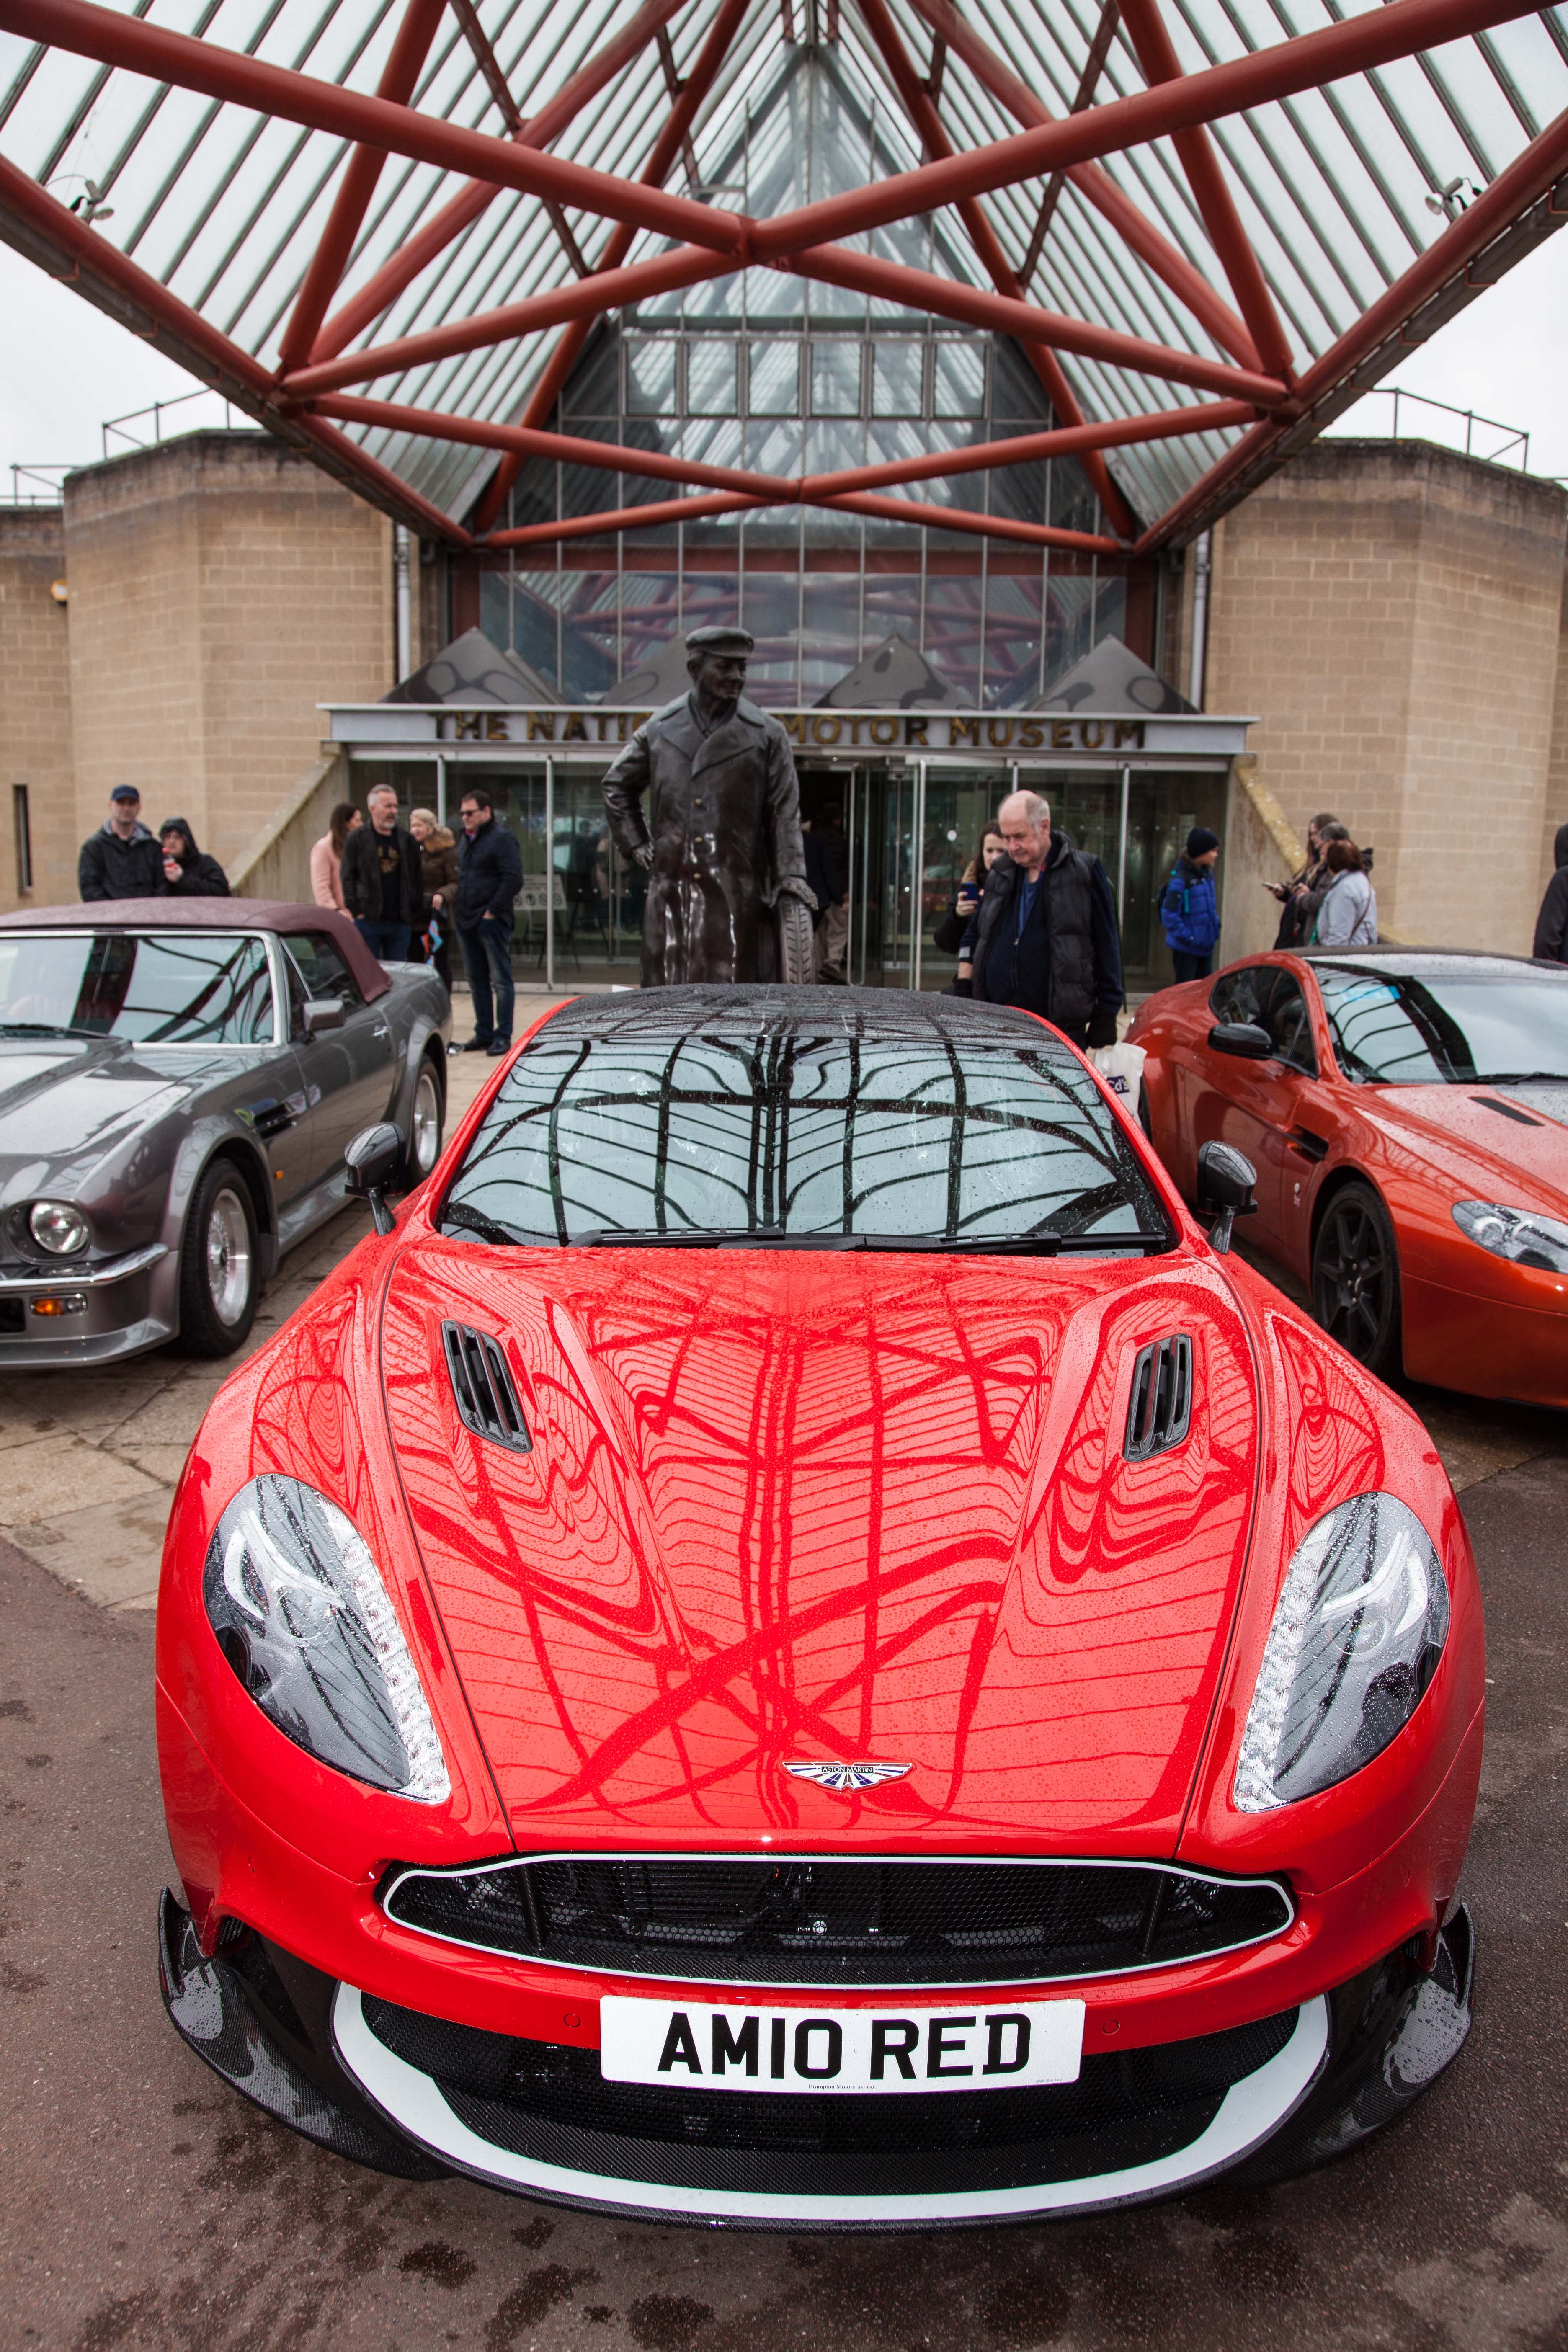 James Bond, James Bond would have loved this car show, ClassicCars.com Journal